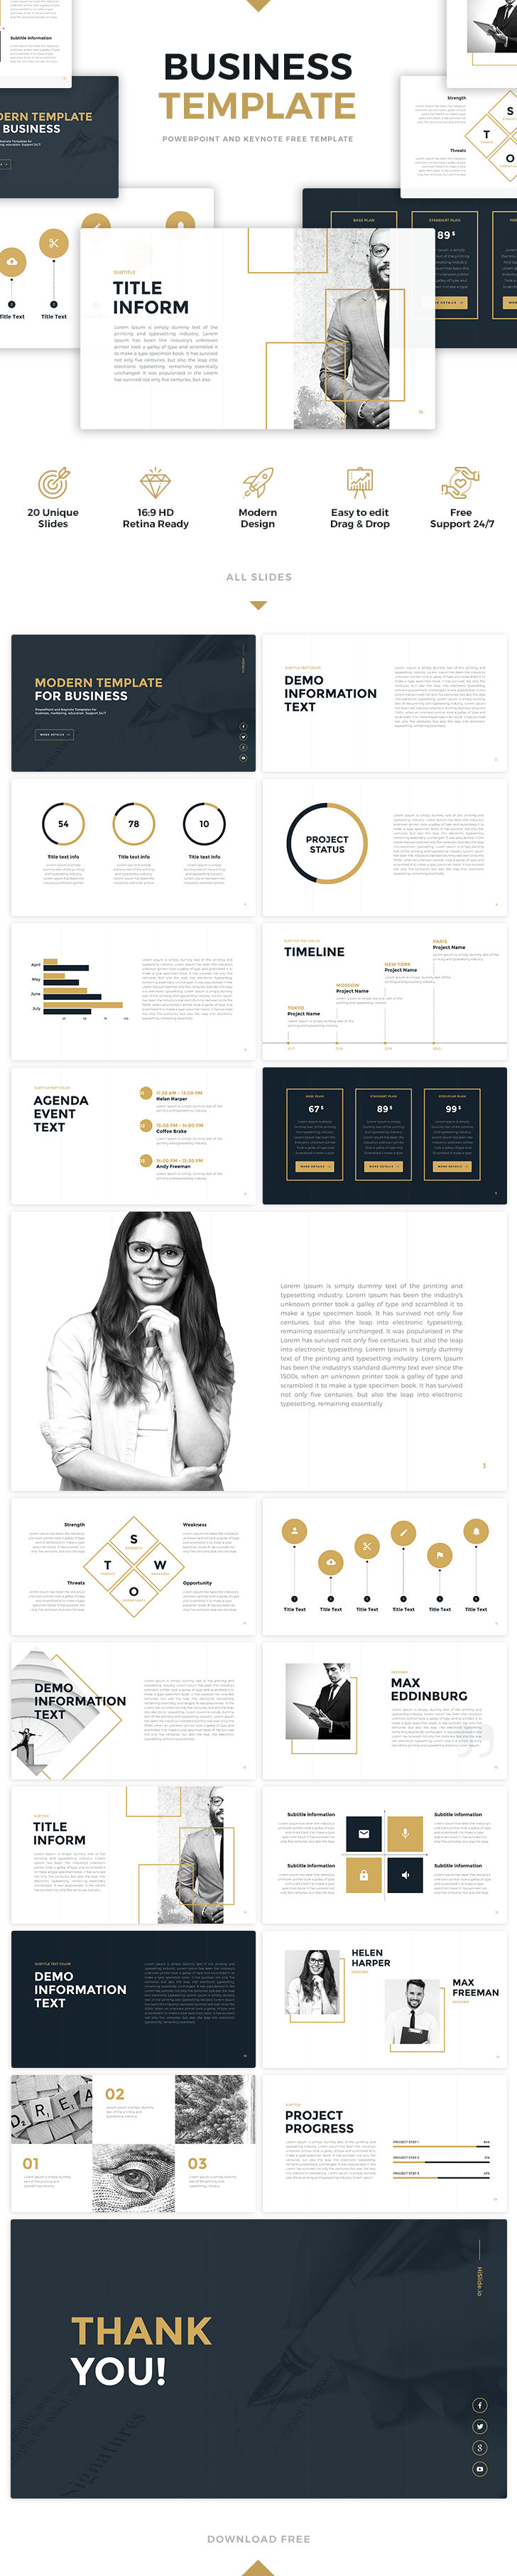 Free PowerPoint and Keynote - Business Template